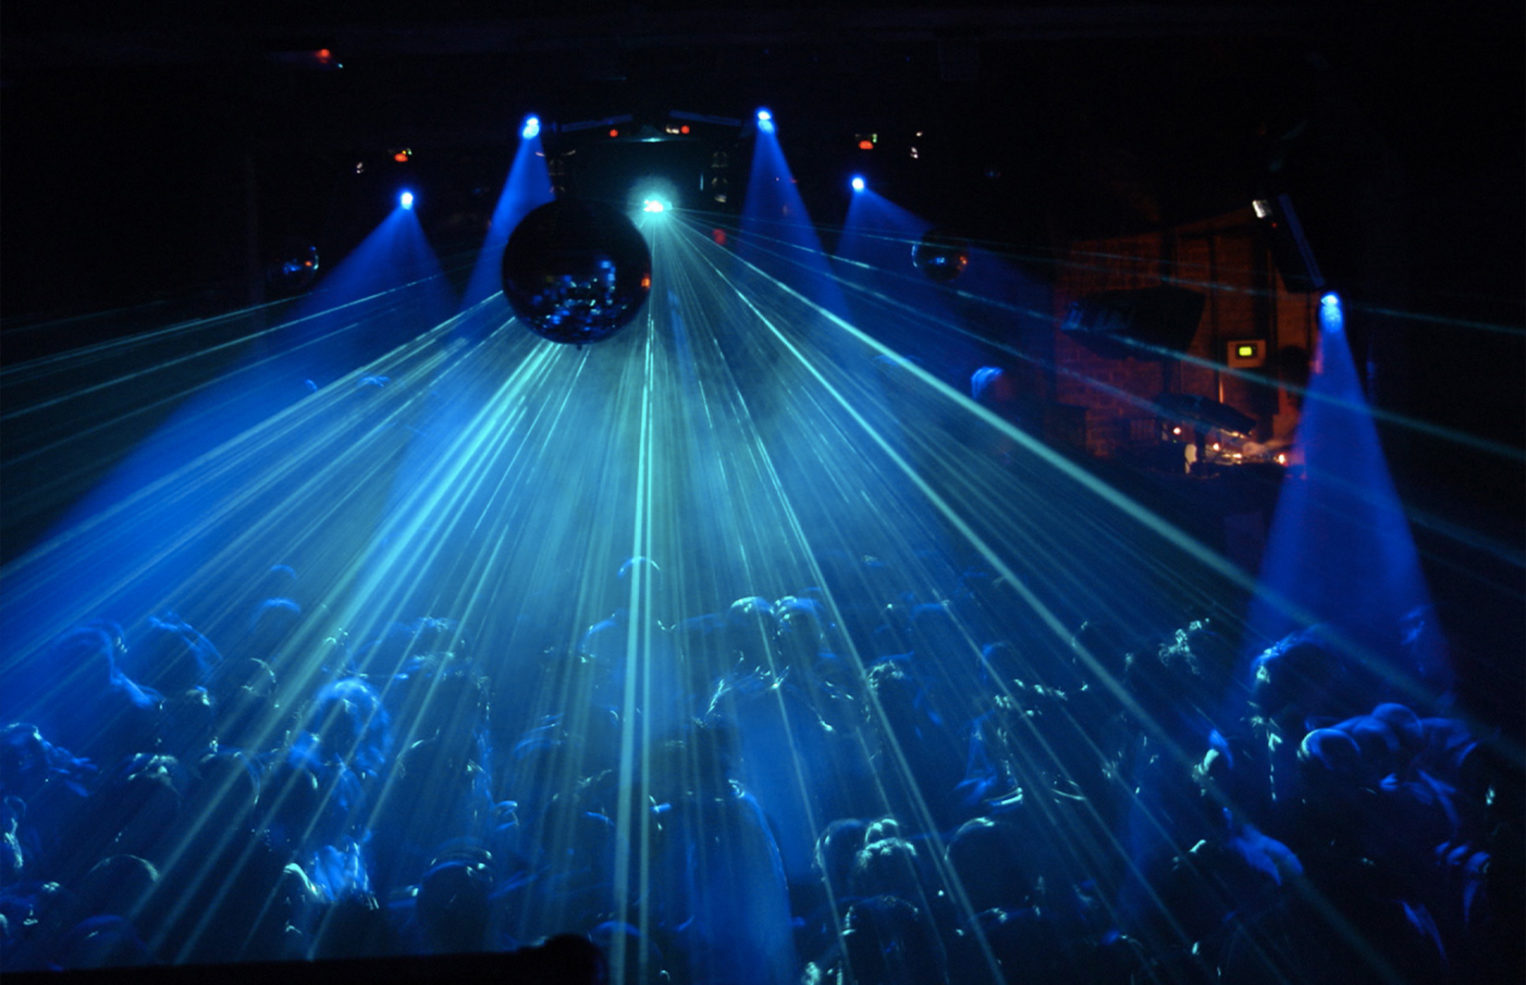 Fabric nightclub